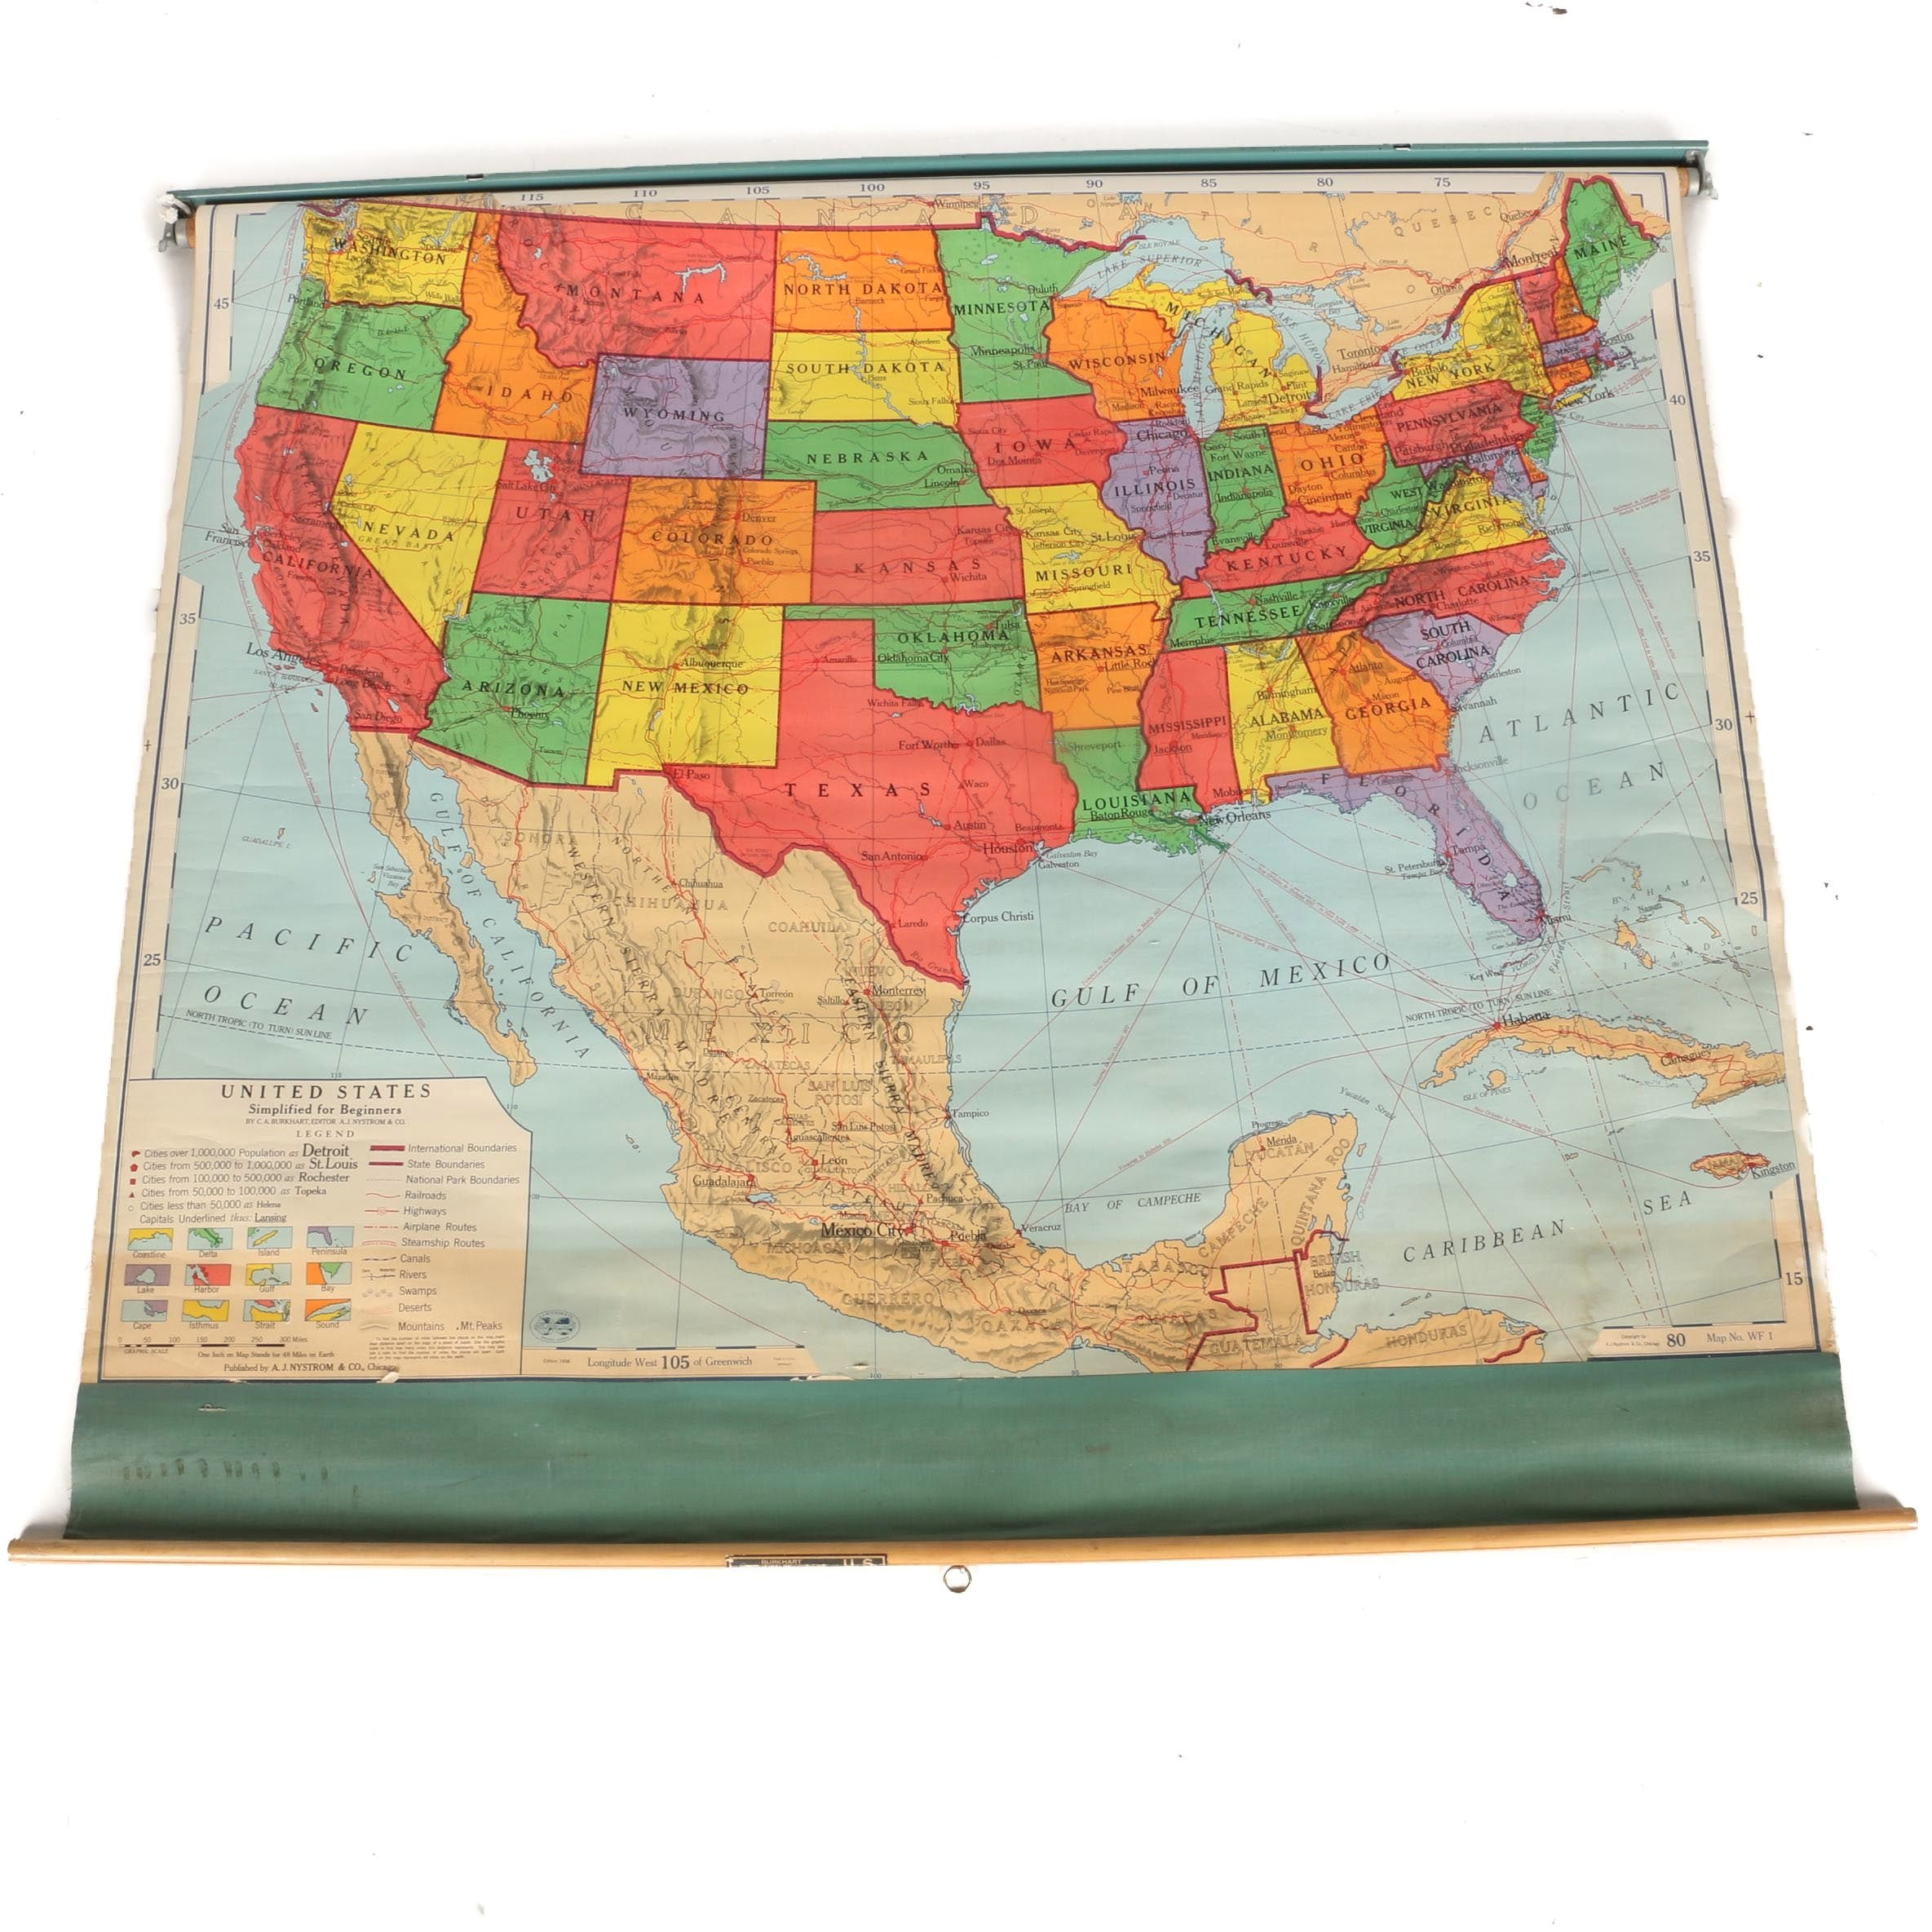 Nystrom World Map.1956 Classroom Map Of United States By A J Nystrom Co Ebth